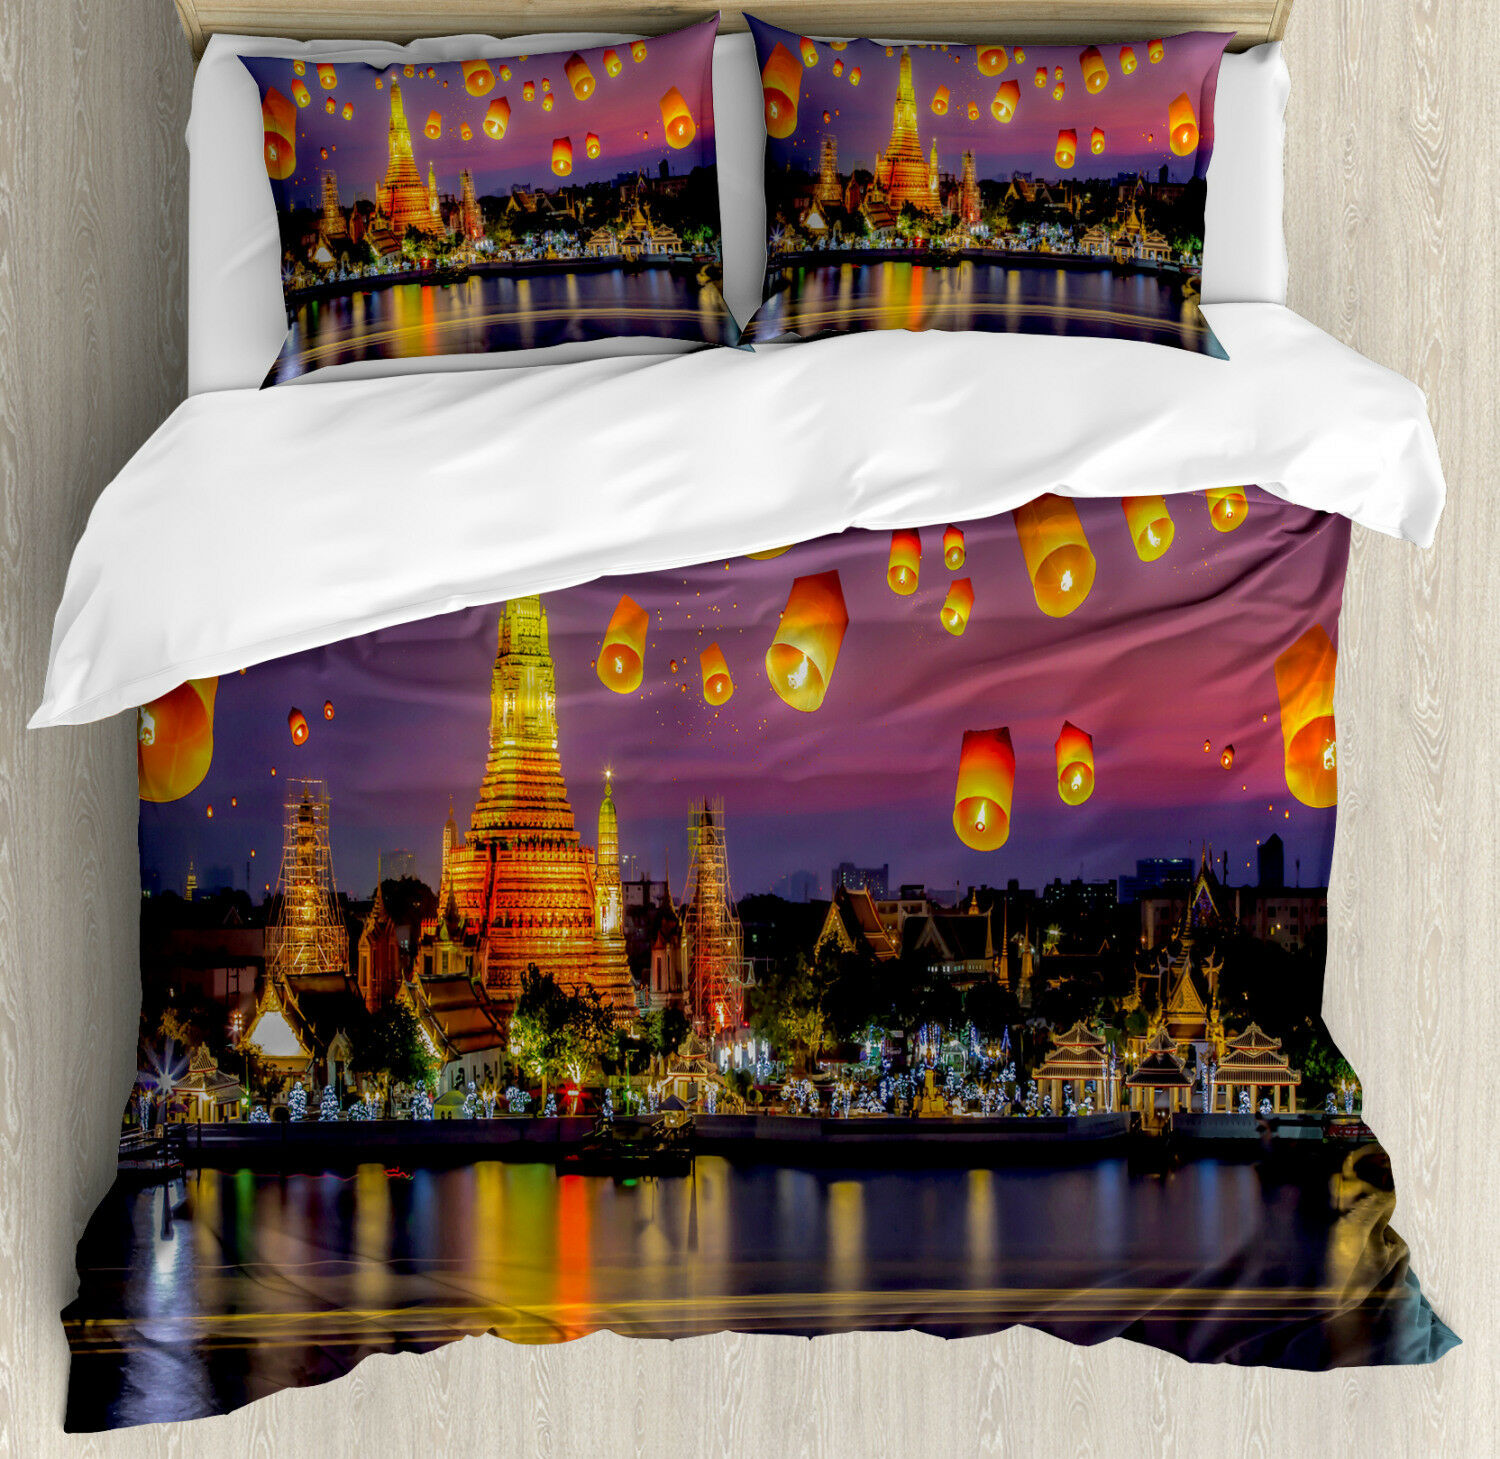 Lantern Duvet Cover Set with Pillow Shams Wet Arun Temple Print